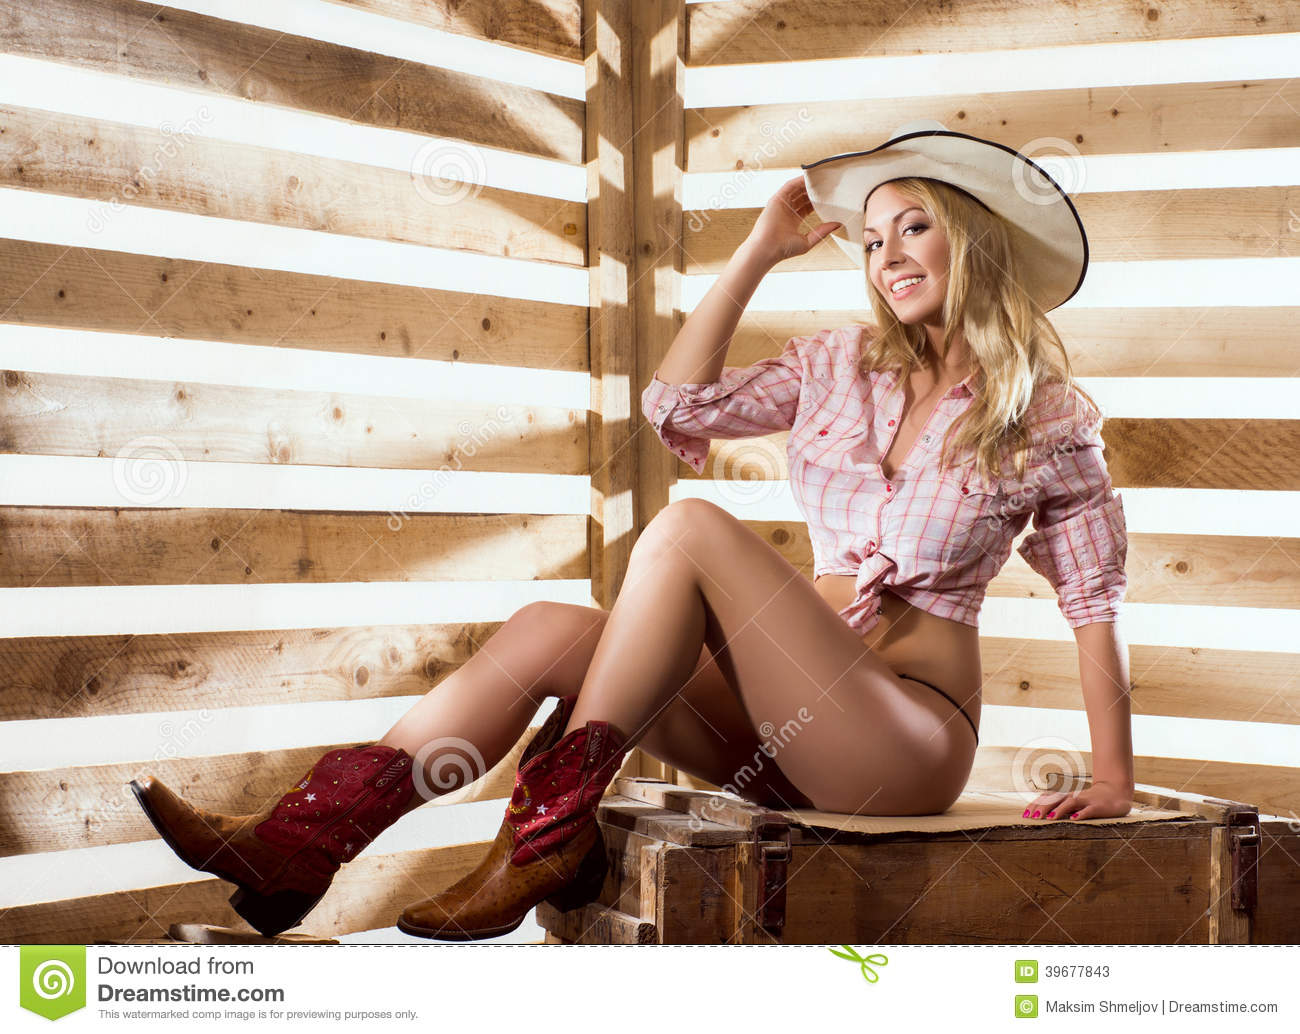 cowgirl-wife-naked